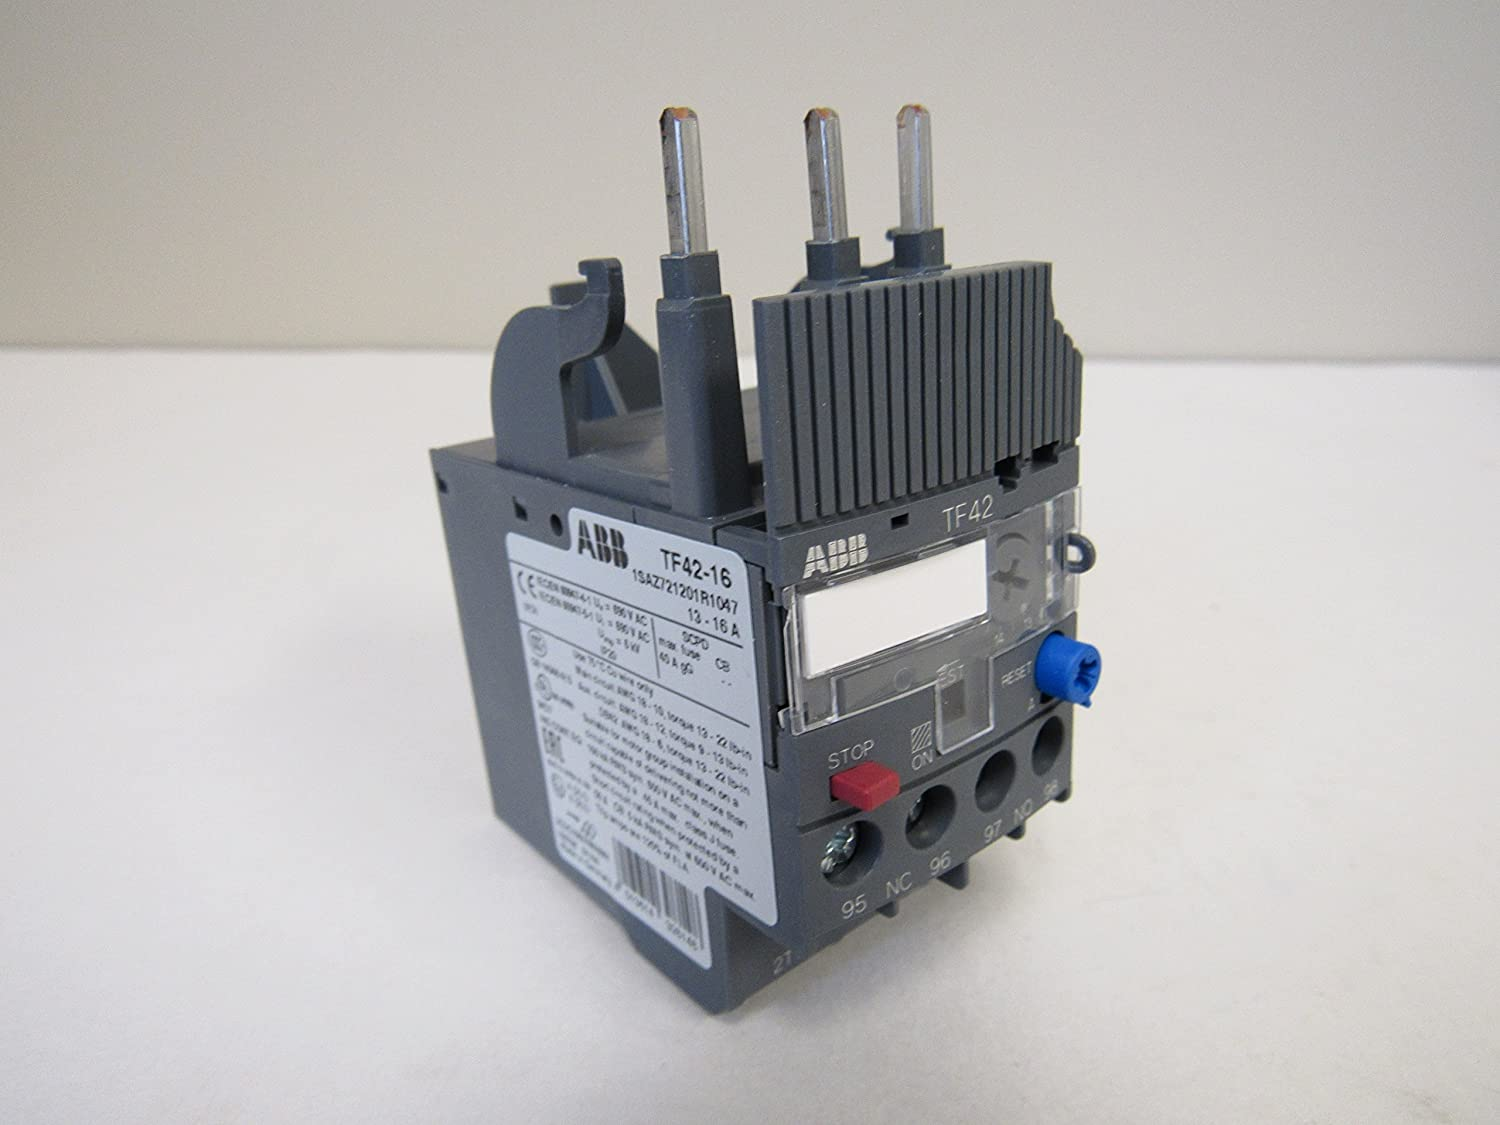 ABB TF42-16 13.0 - Free shipping anywhere in the nation 16.0 OFFicial Overload IEC Amp Relay